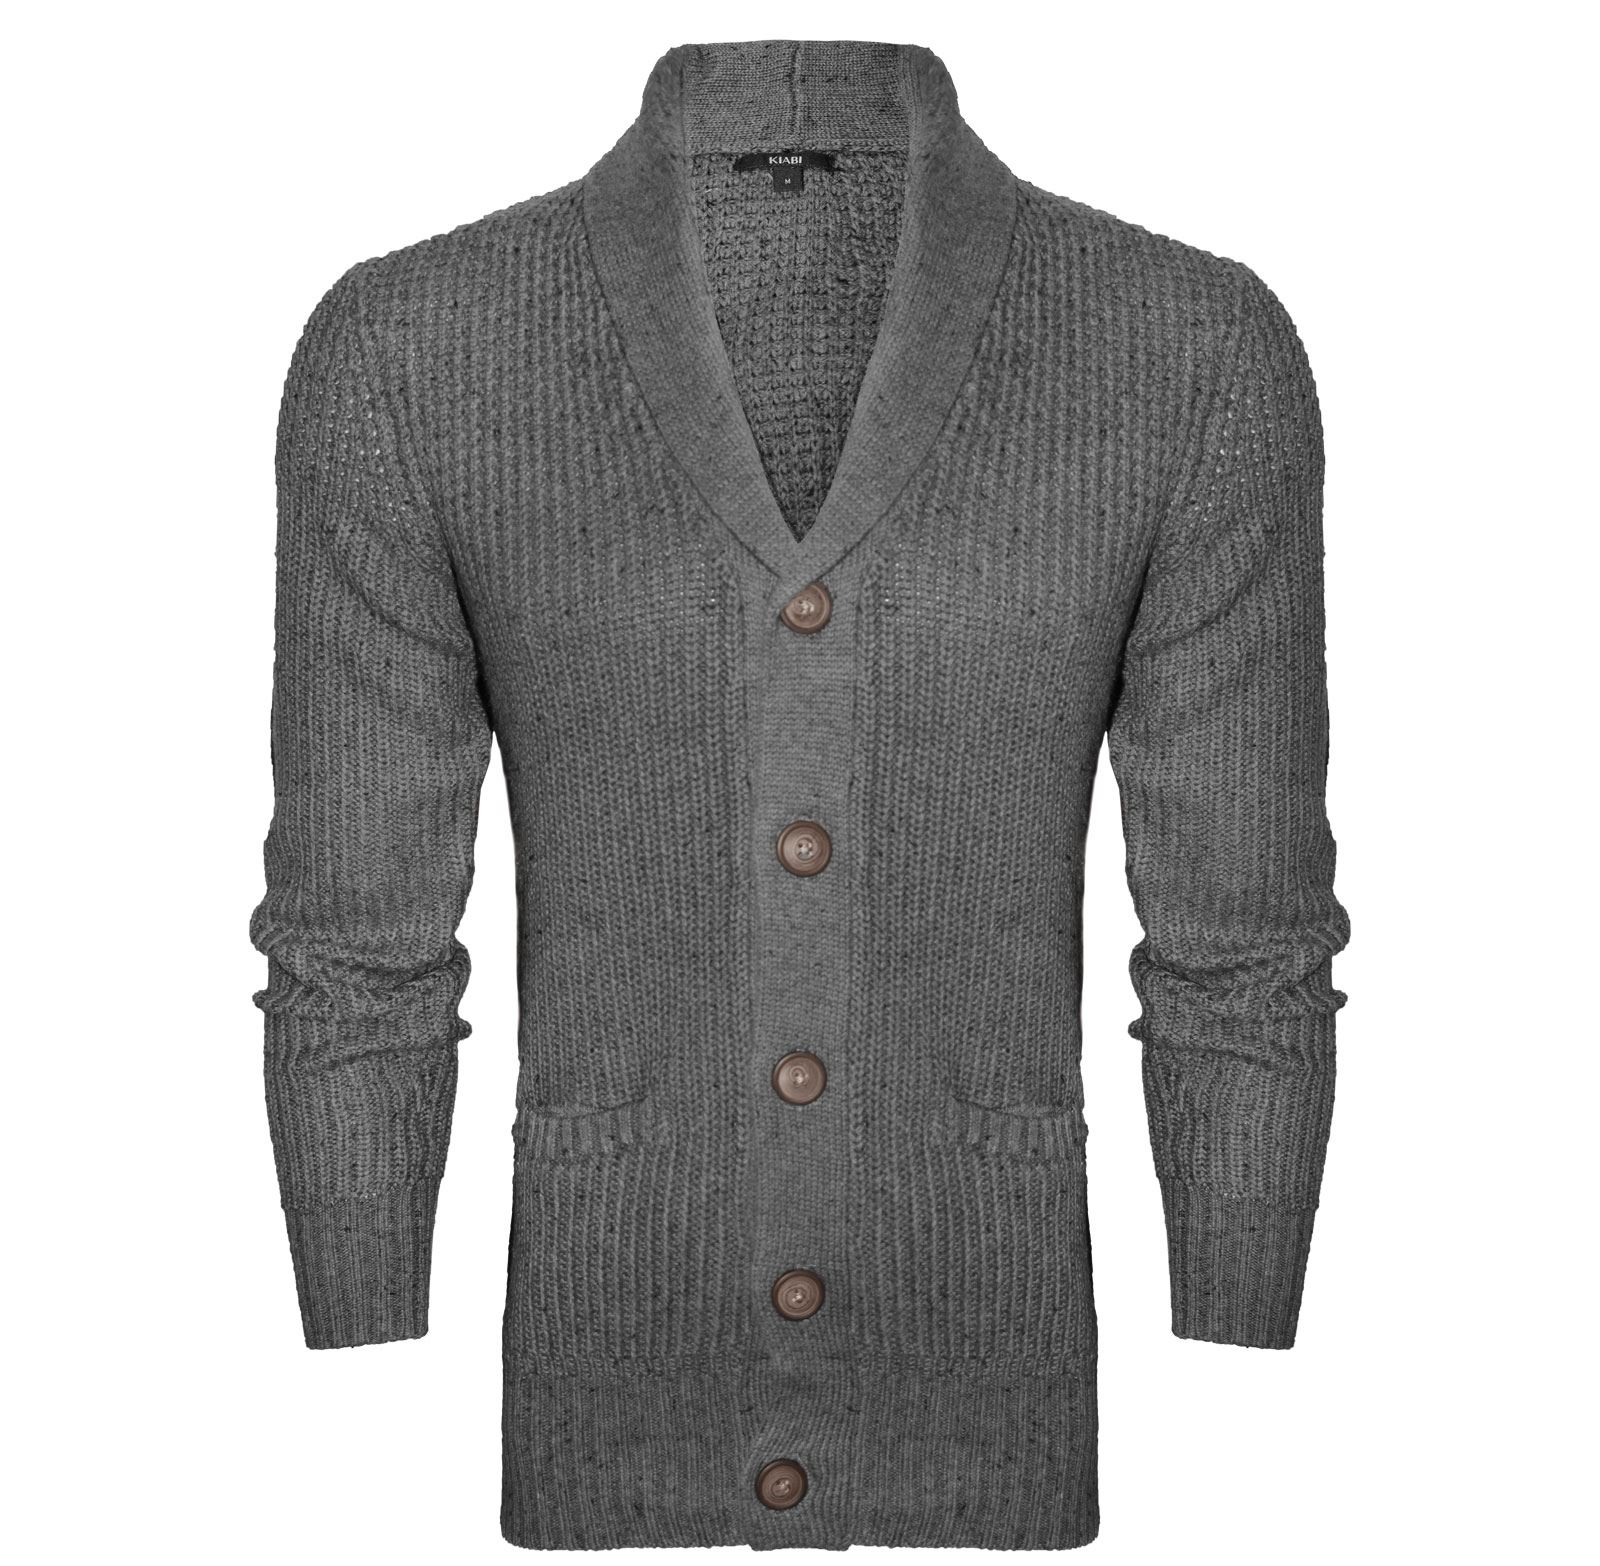 NEW MENS SHAWL COLLAR LONG SLEEVE KNITTED CARDIGAN BUTTON ...